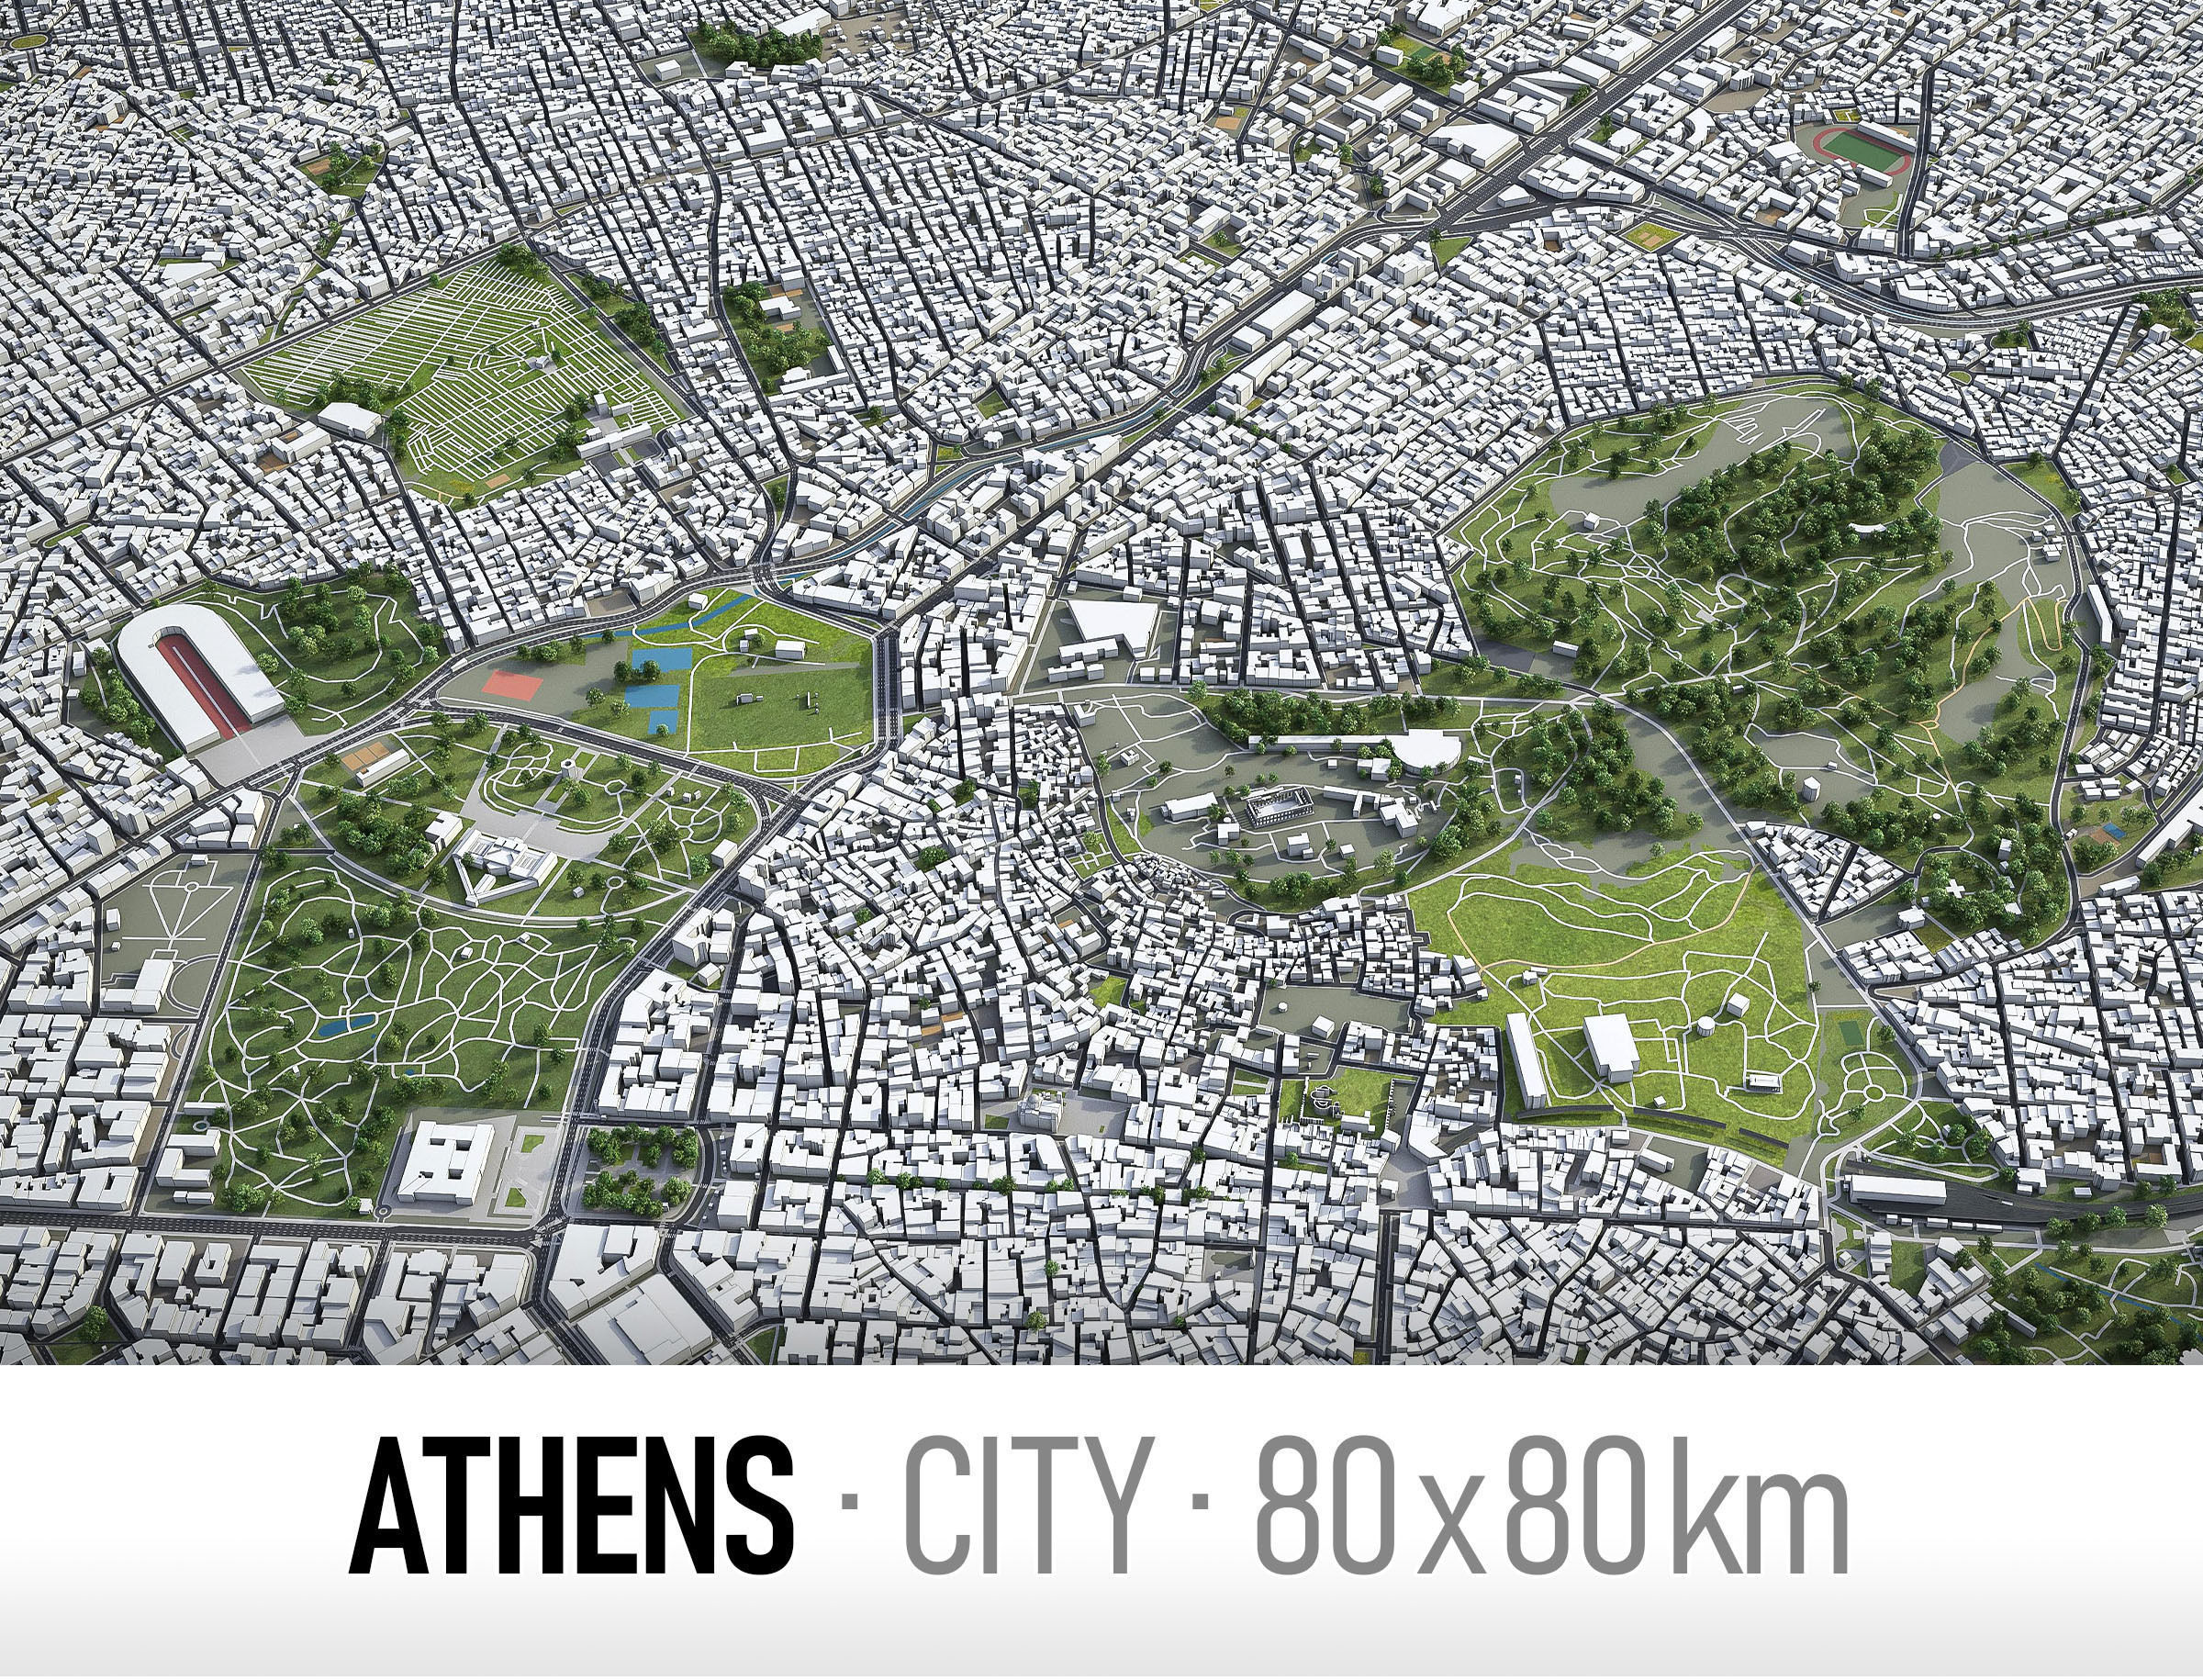 Athens - city and surroundings